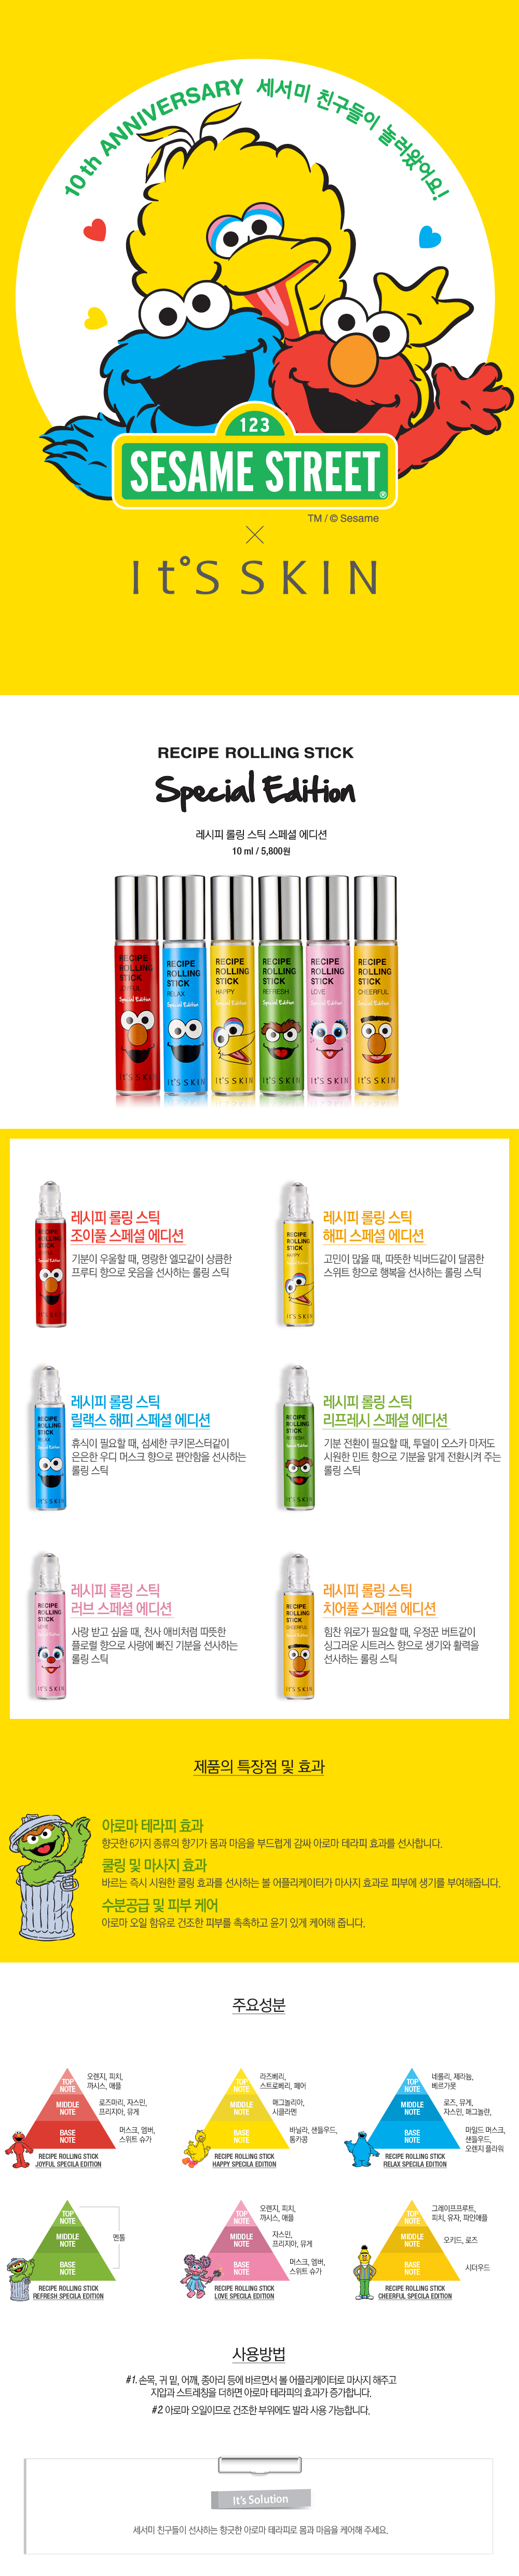 It's Skin Recipe Rolling Stick Special Edition 10ml malaysia singapore indonesia